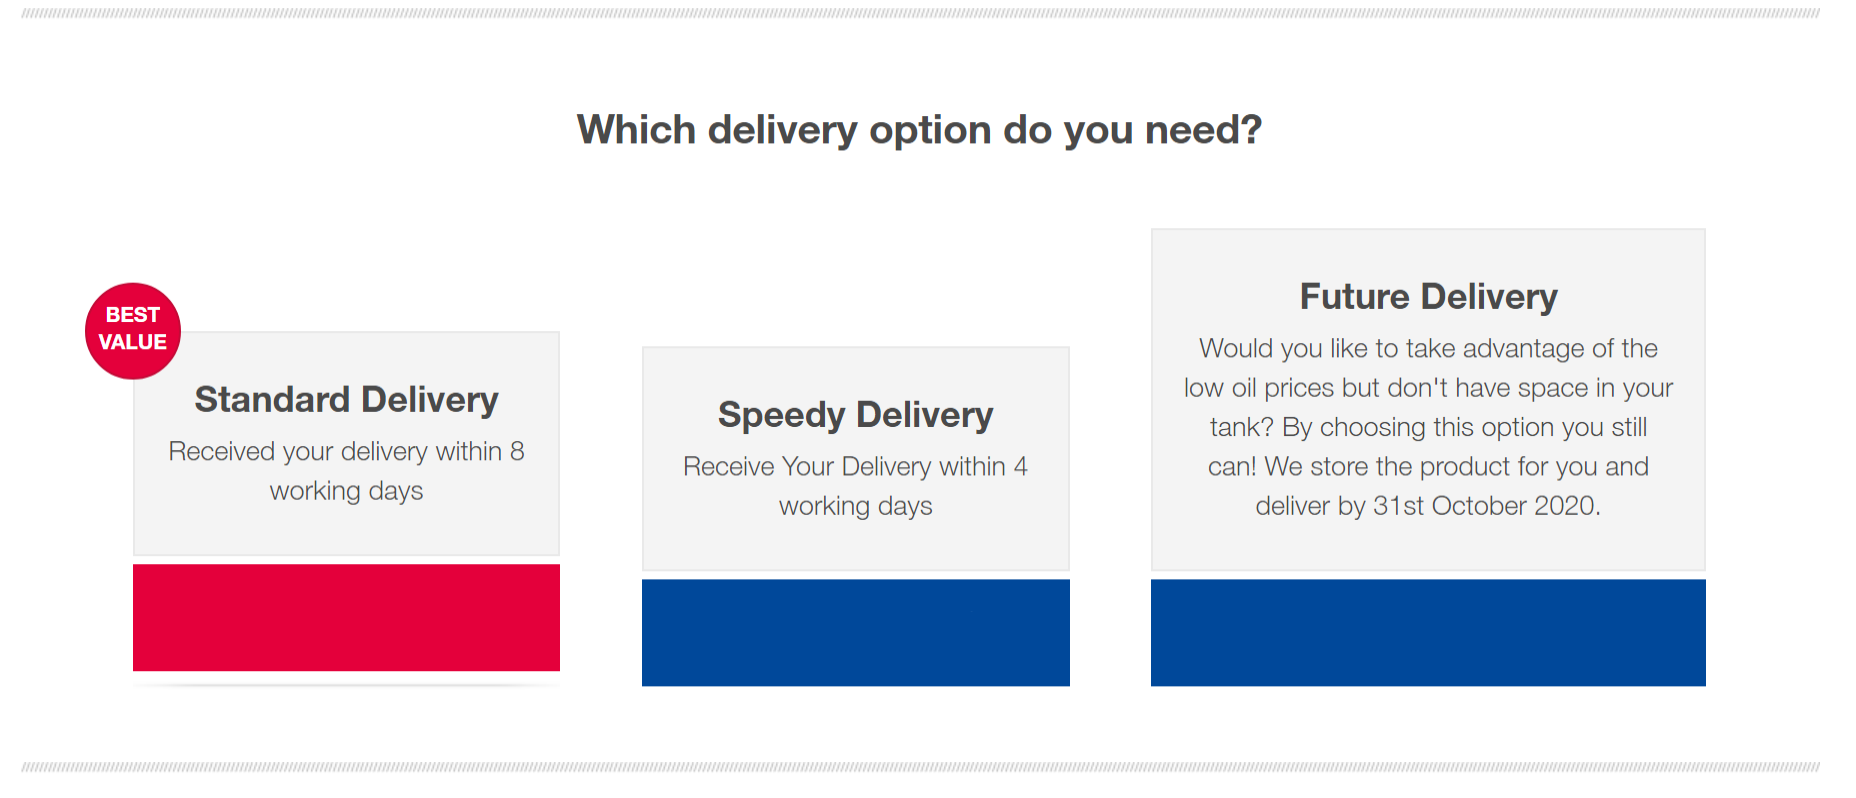 Delivery options inc future delivery